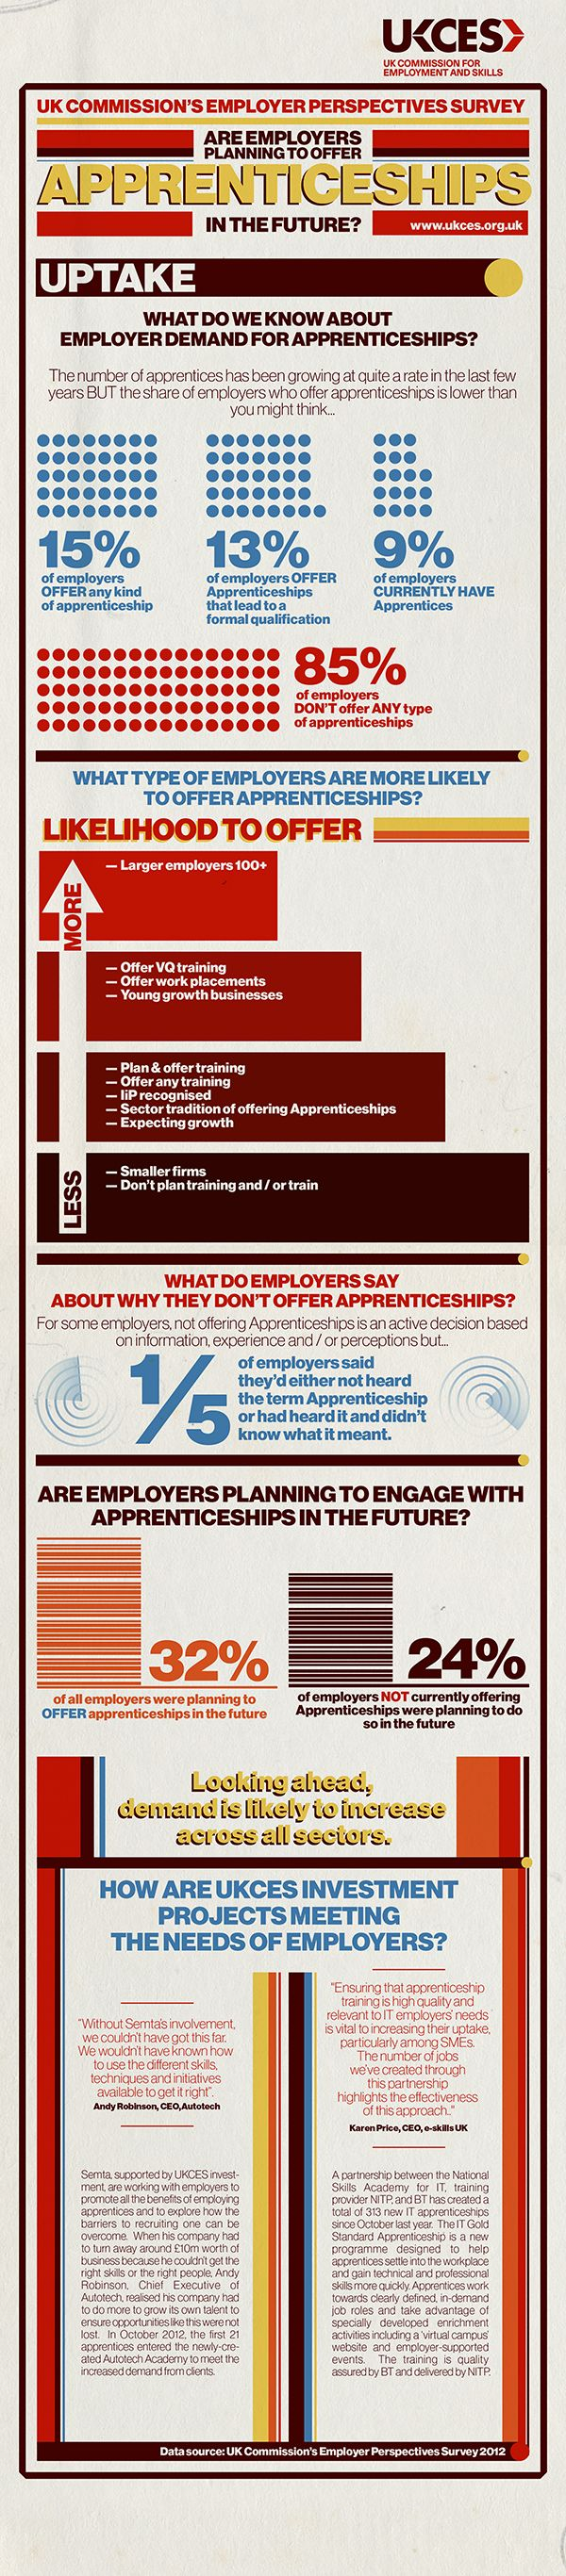 Are employers planning to offer Apprenticeships in the future? This #infographic is based on data from the 2012 UK Employer Perspectives Survey